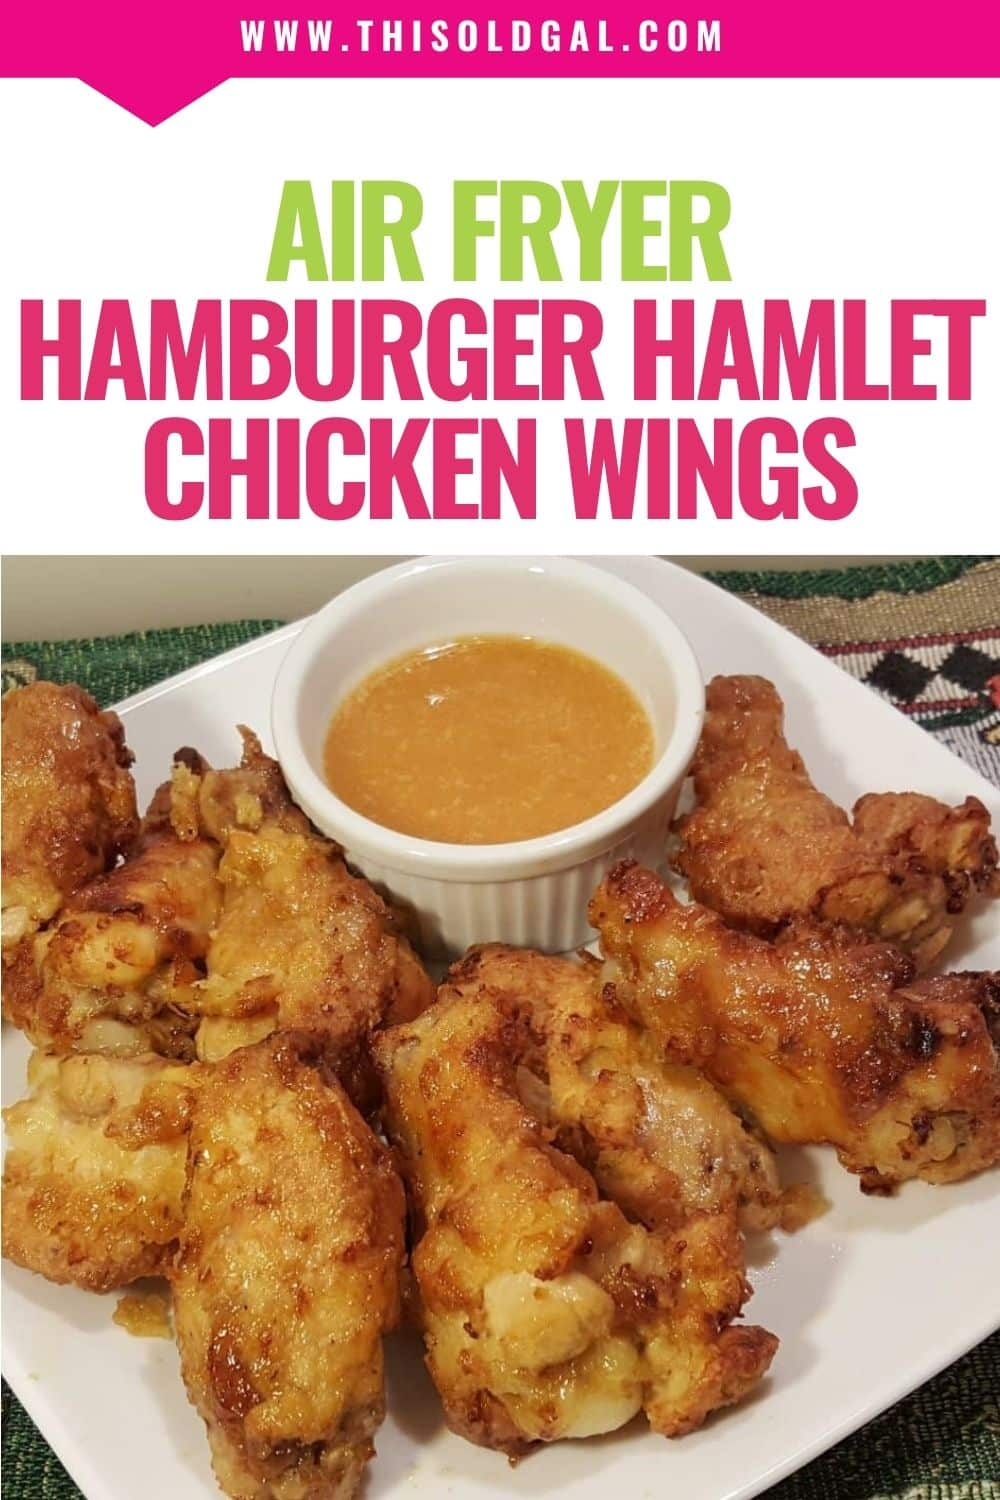 Air Fryer Hamburger Hamlet Fried Chicken Wings with Apricot Sauce